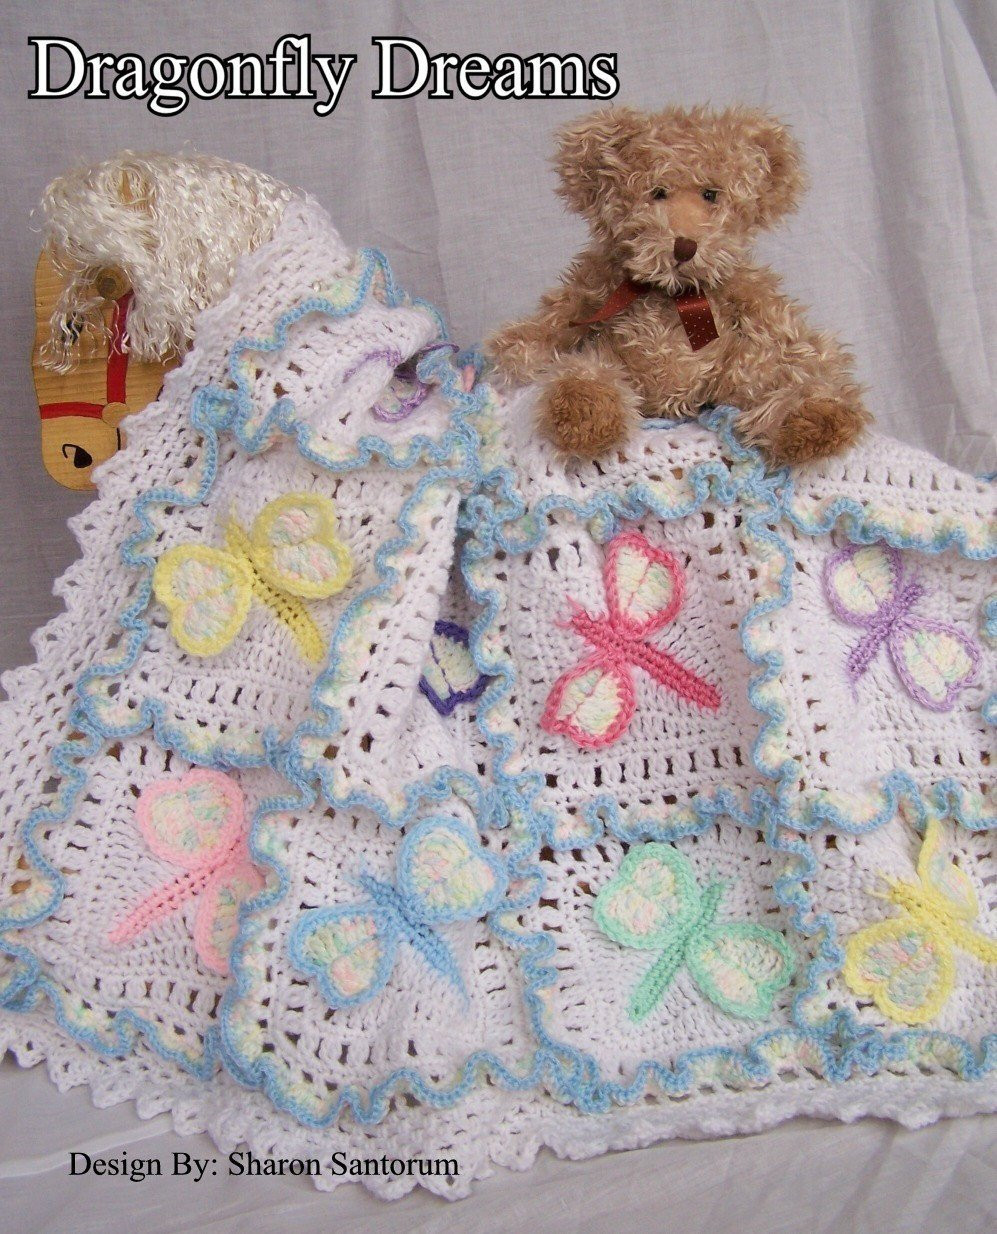 Unique Dragonfly Dreams Crochet Baby Afghan or Blanket Pattern Pdf Dragonfly Crochet Blanket Of New 41 Ideas Dragonfly Crochet Blanket